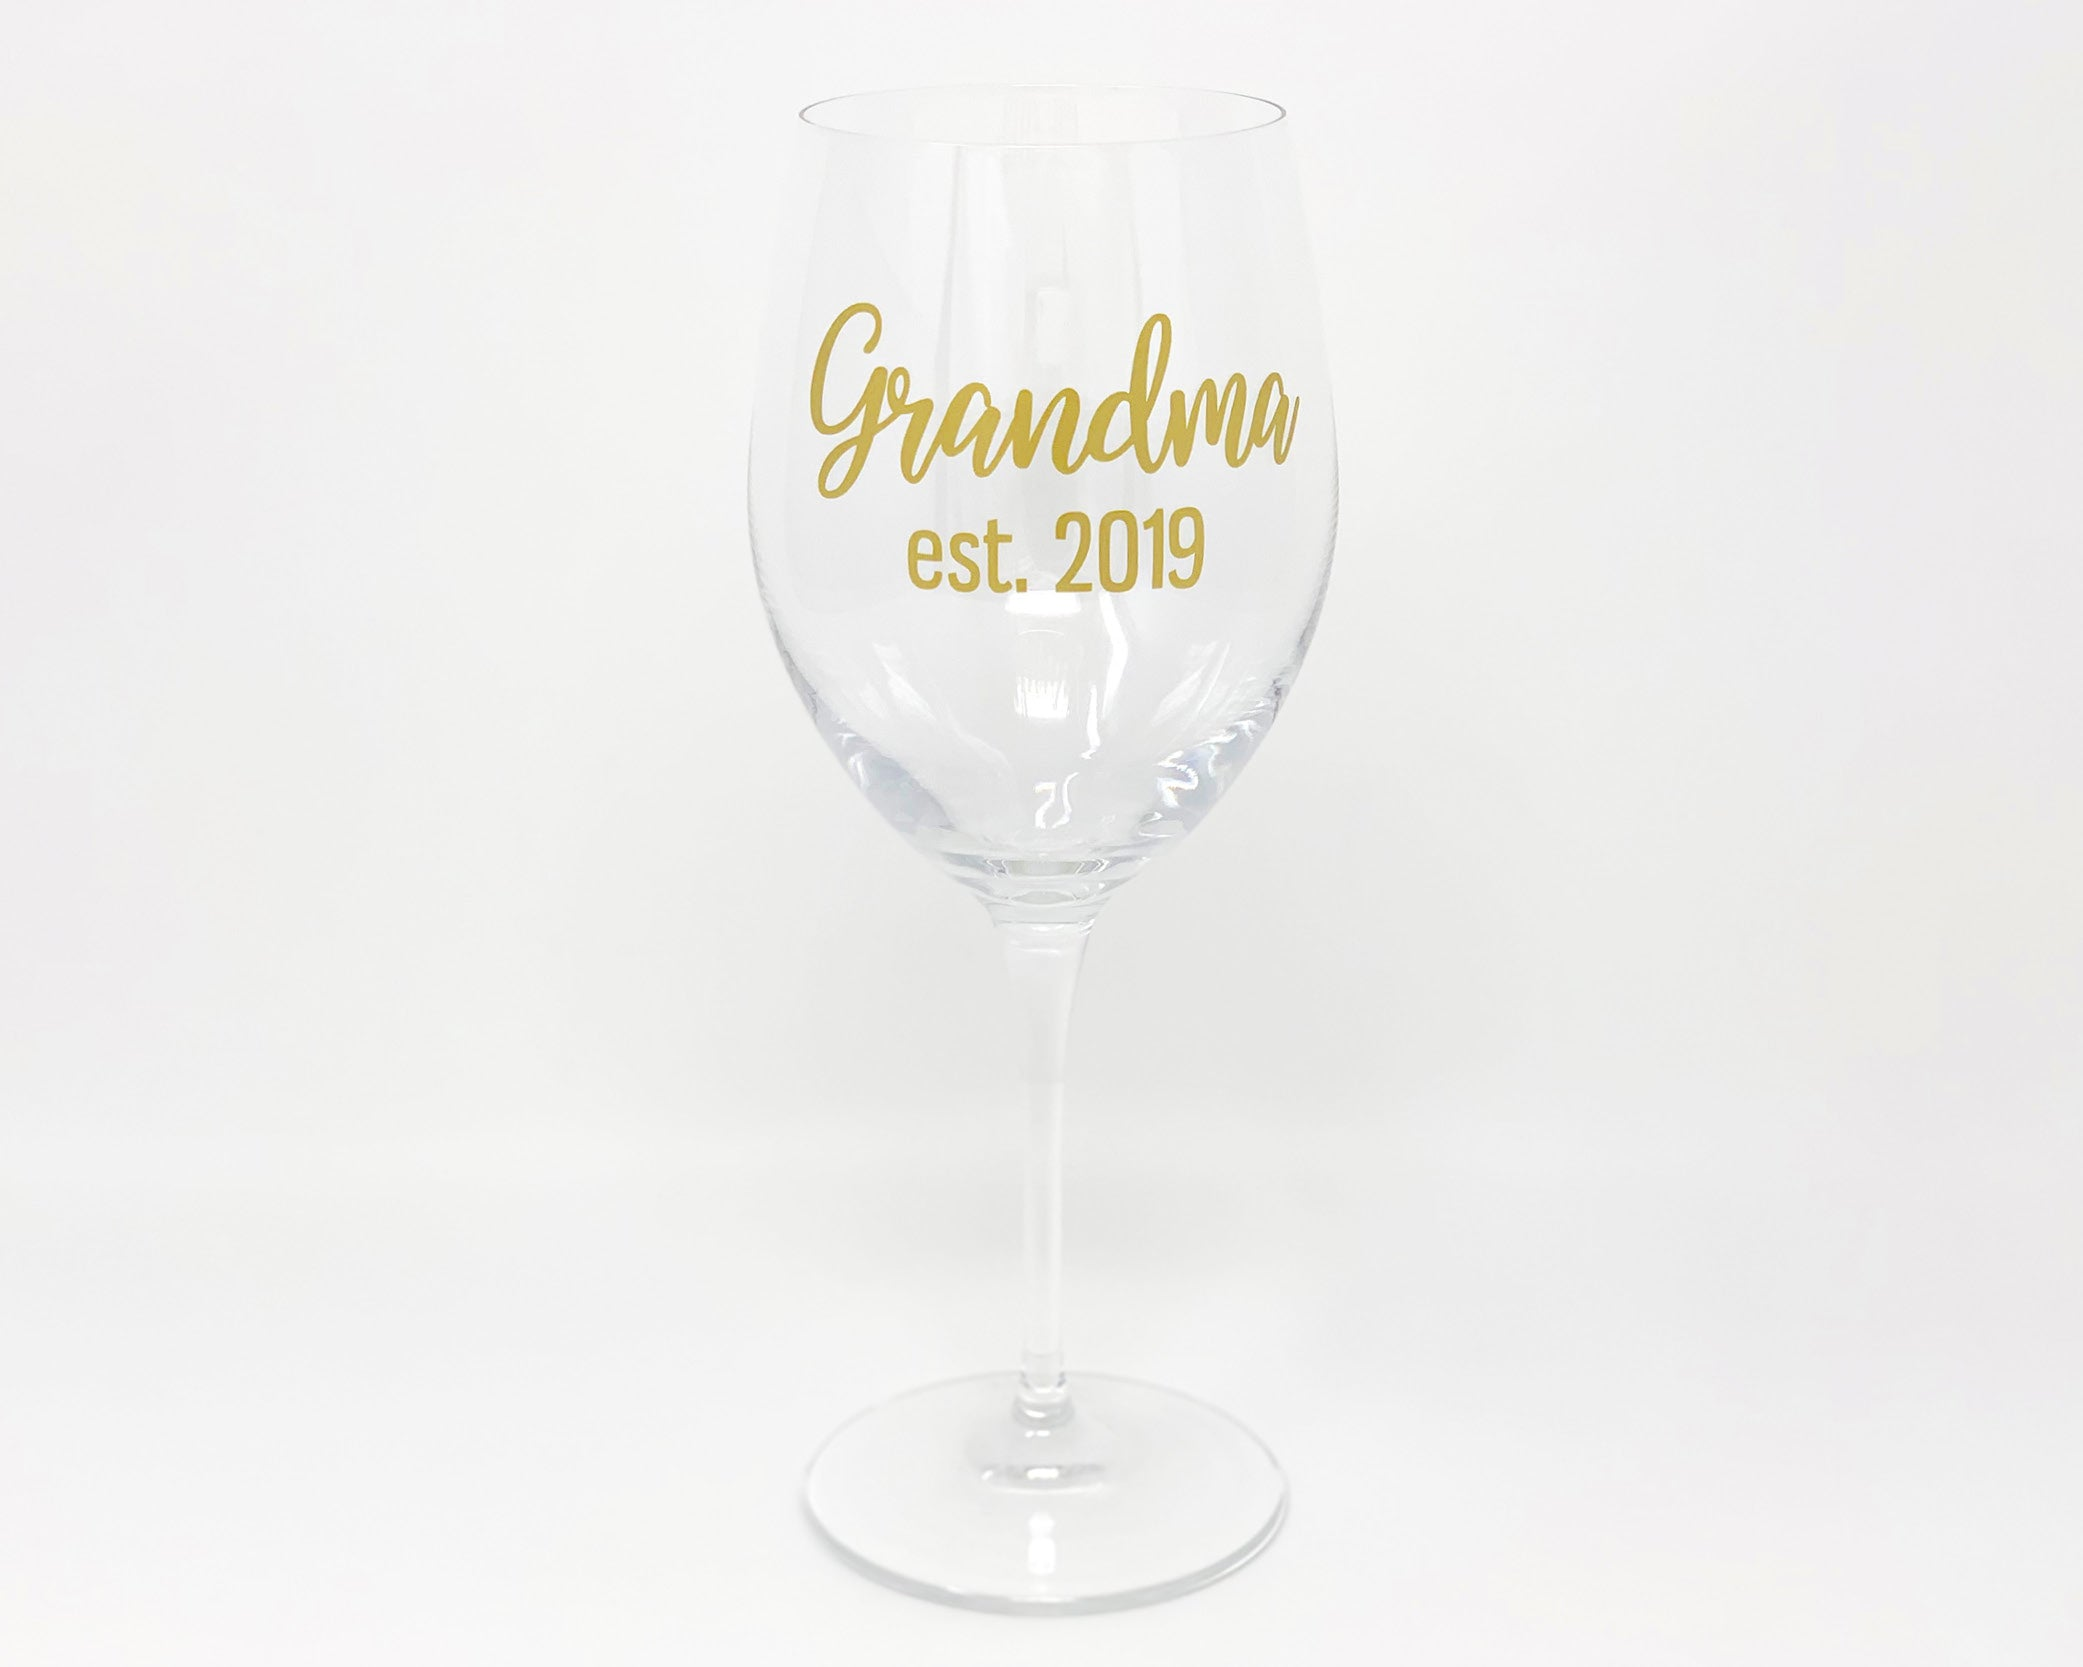 Grandma/'s Yule Fuel New Grandmother Gift Wine Glasses Funny Soon to be Gift for Grandma Christmas Gift 2020 Stemless Wine Glass